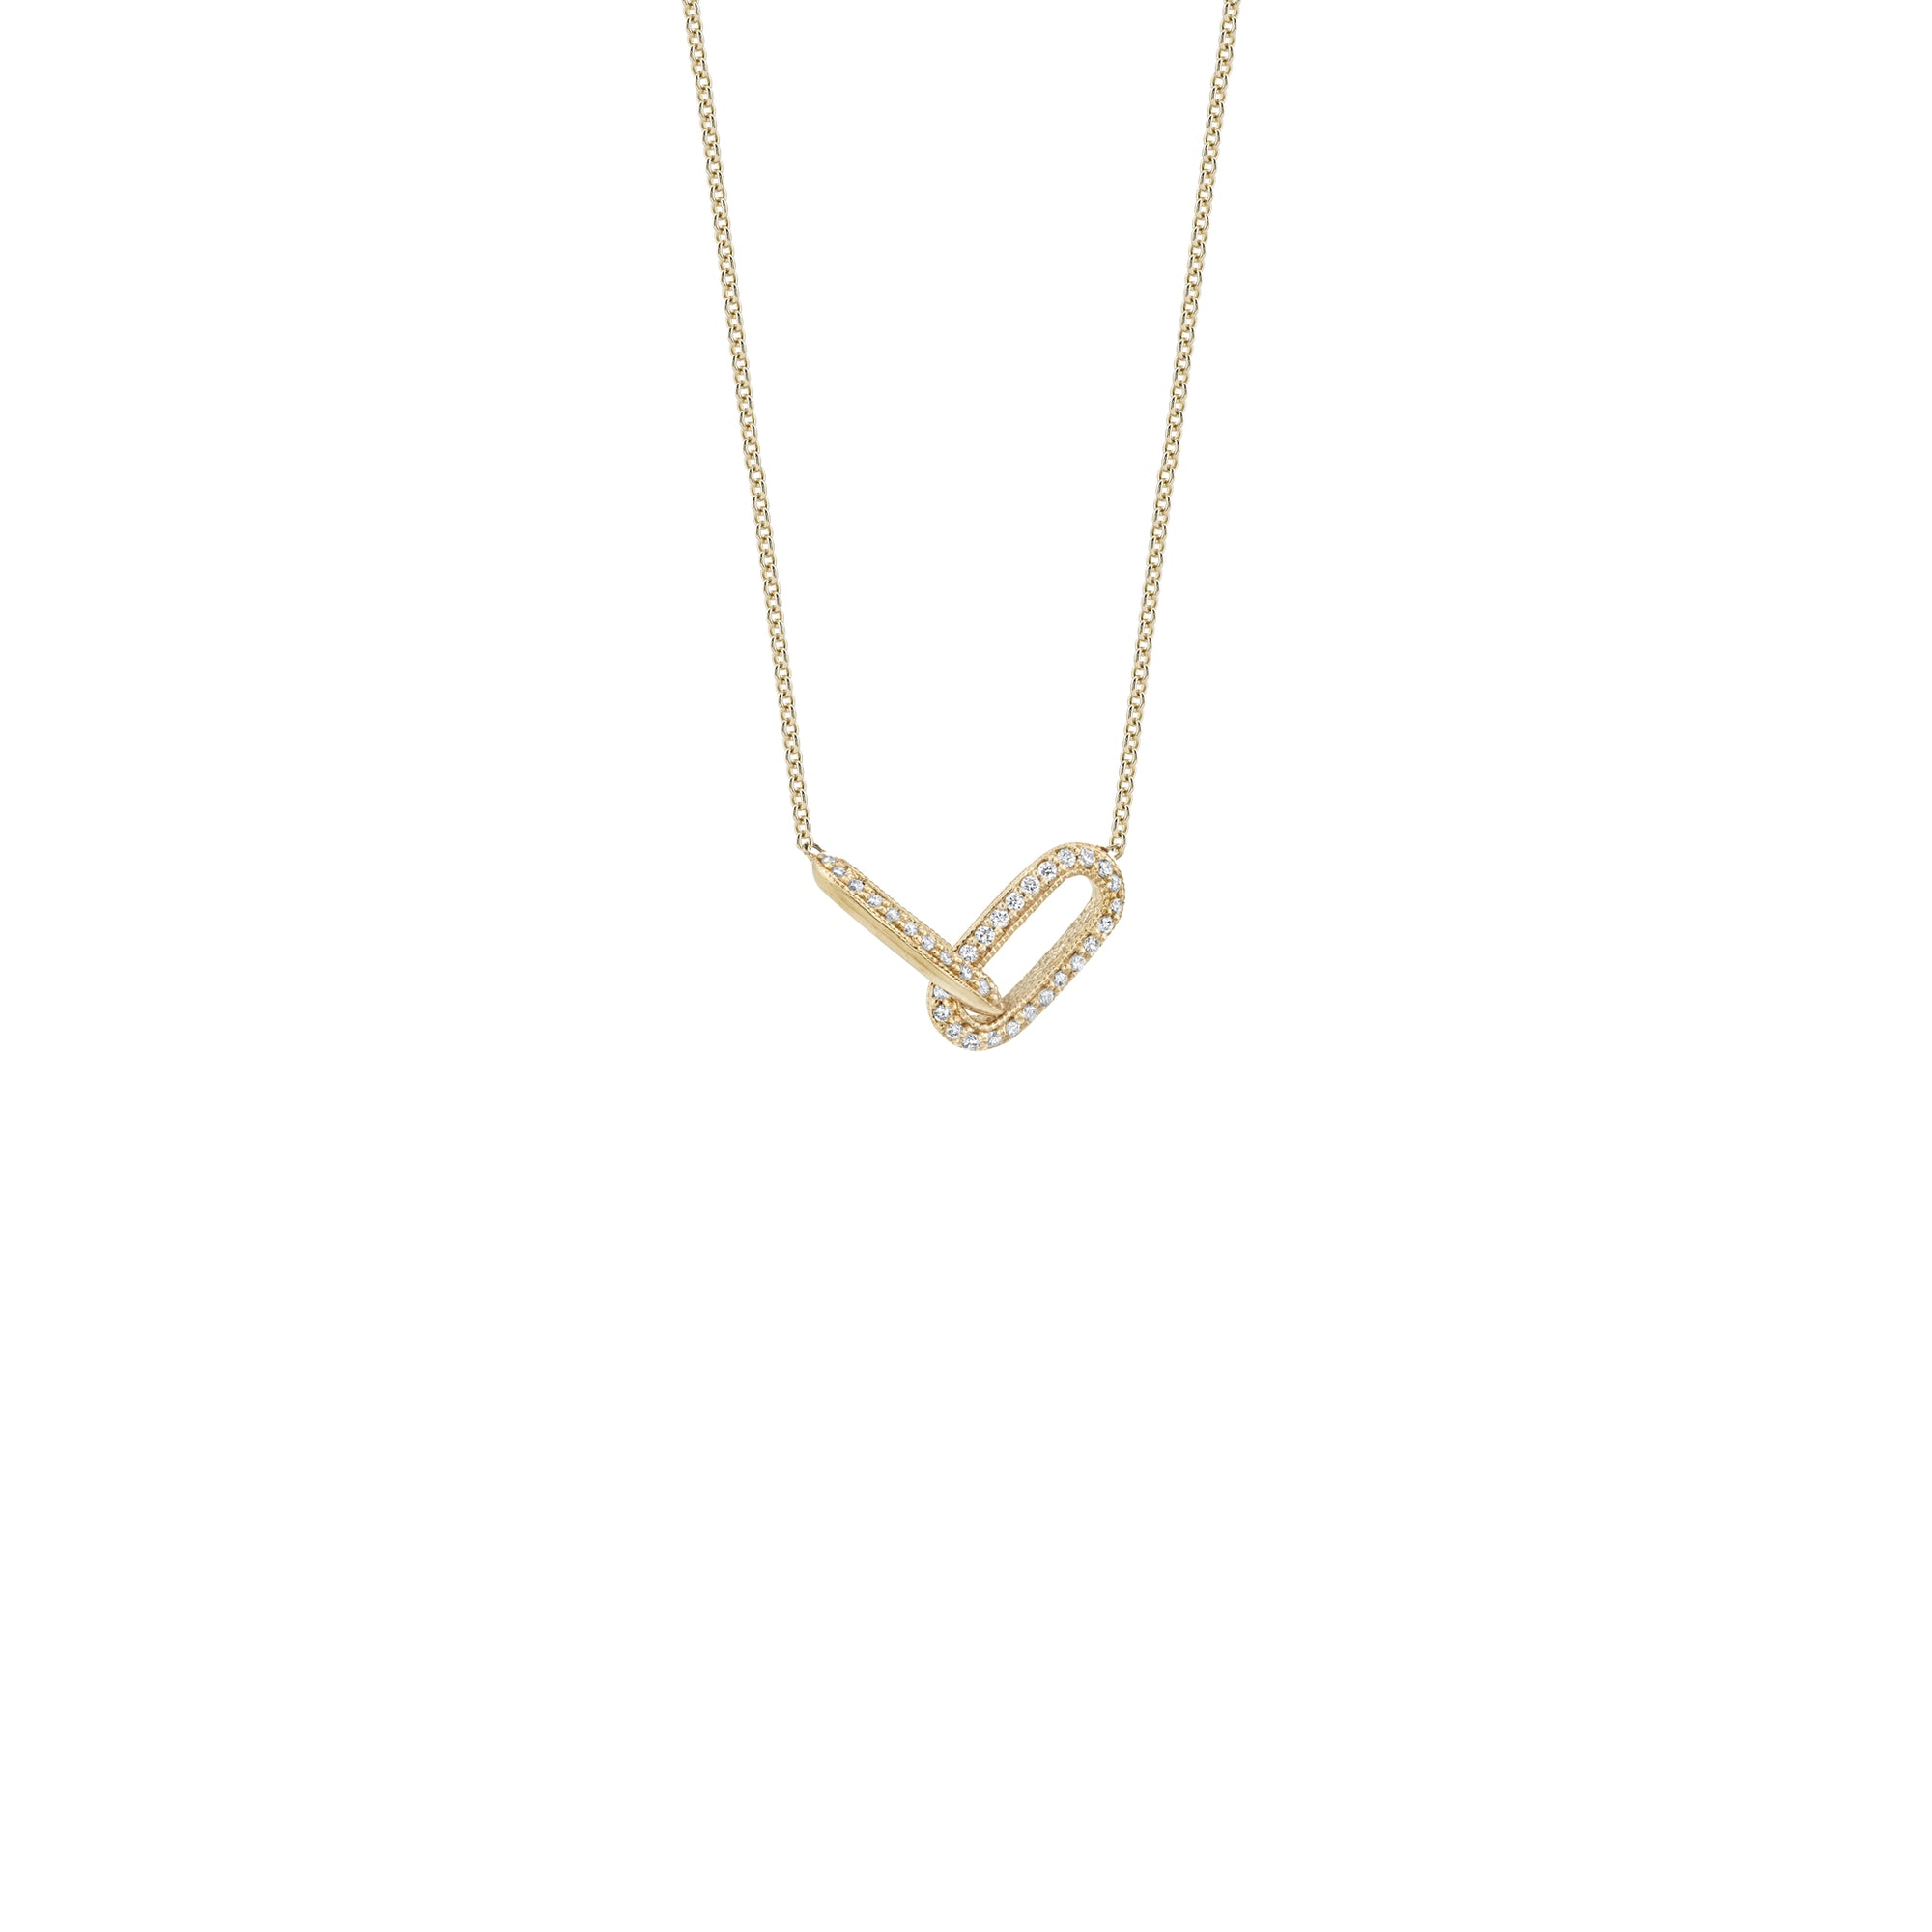 One Sided Pave Linked Necklace